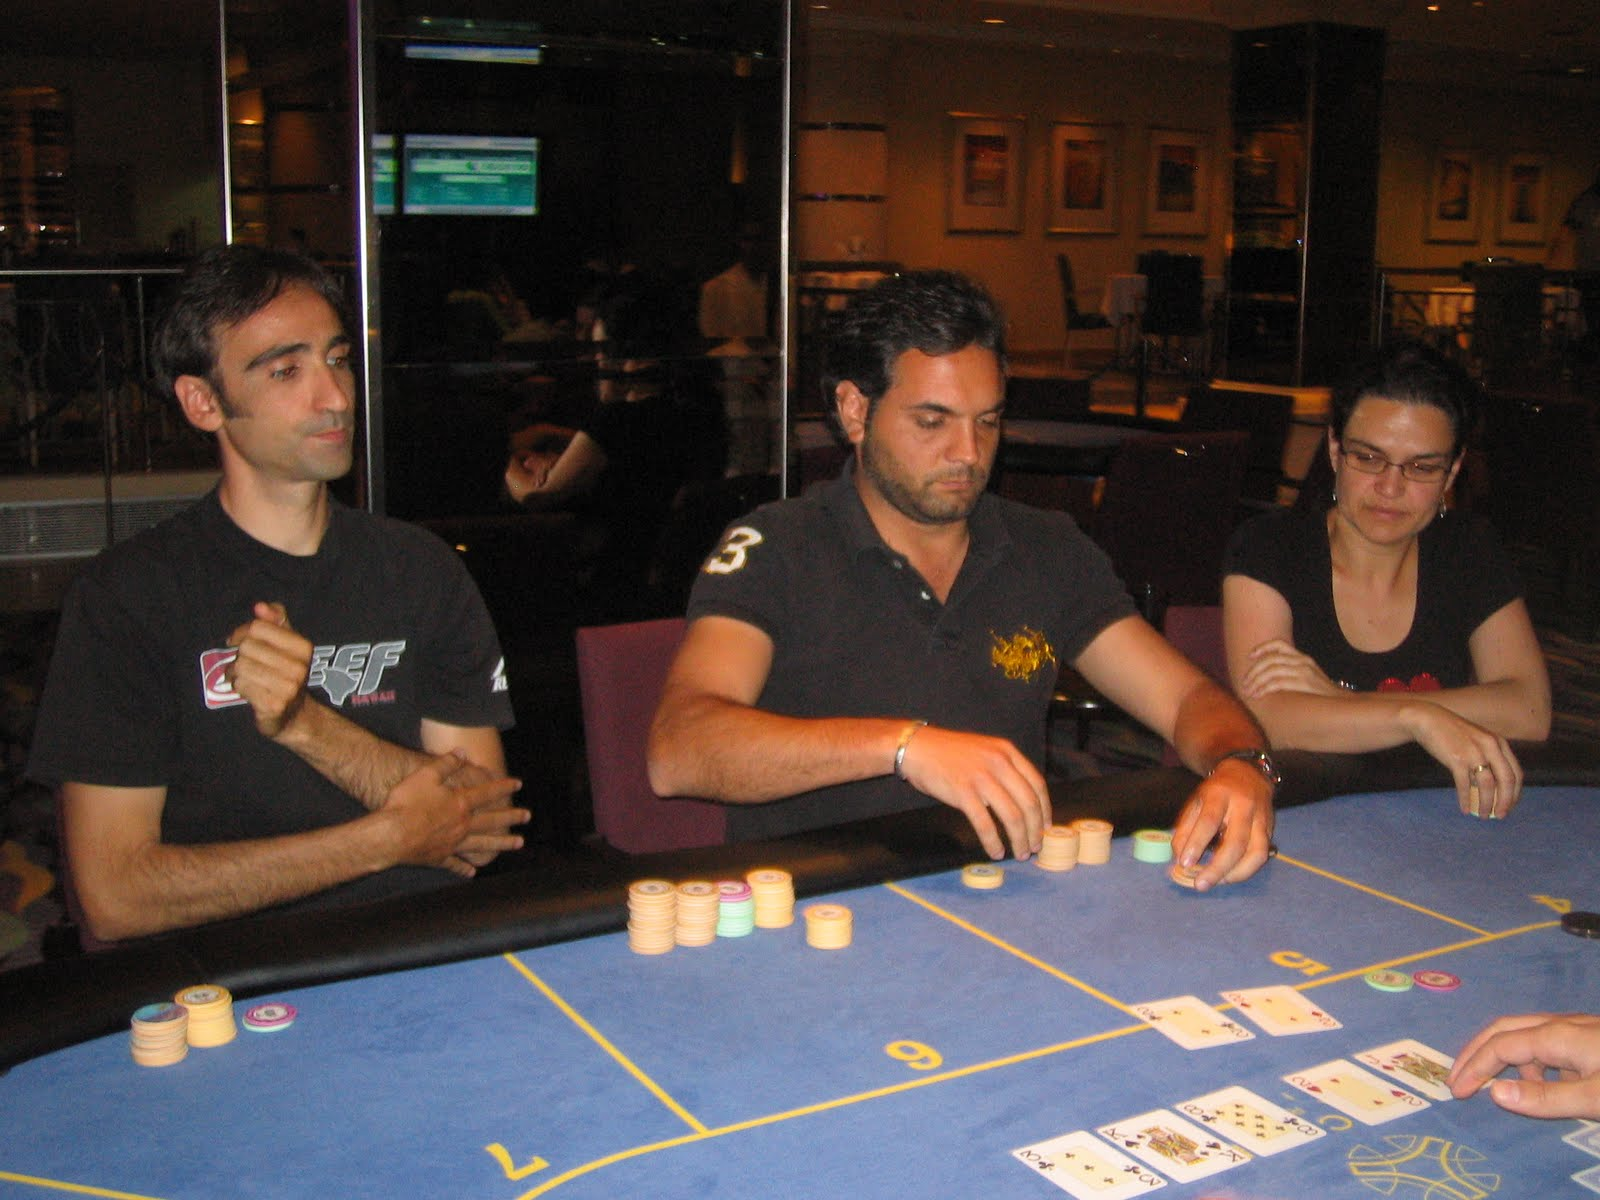 Sevilla casino poker